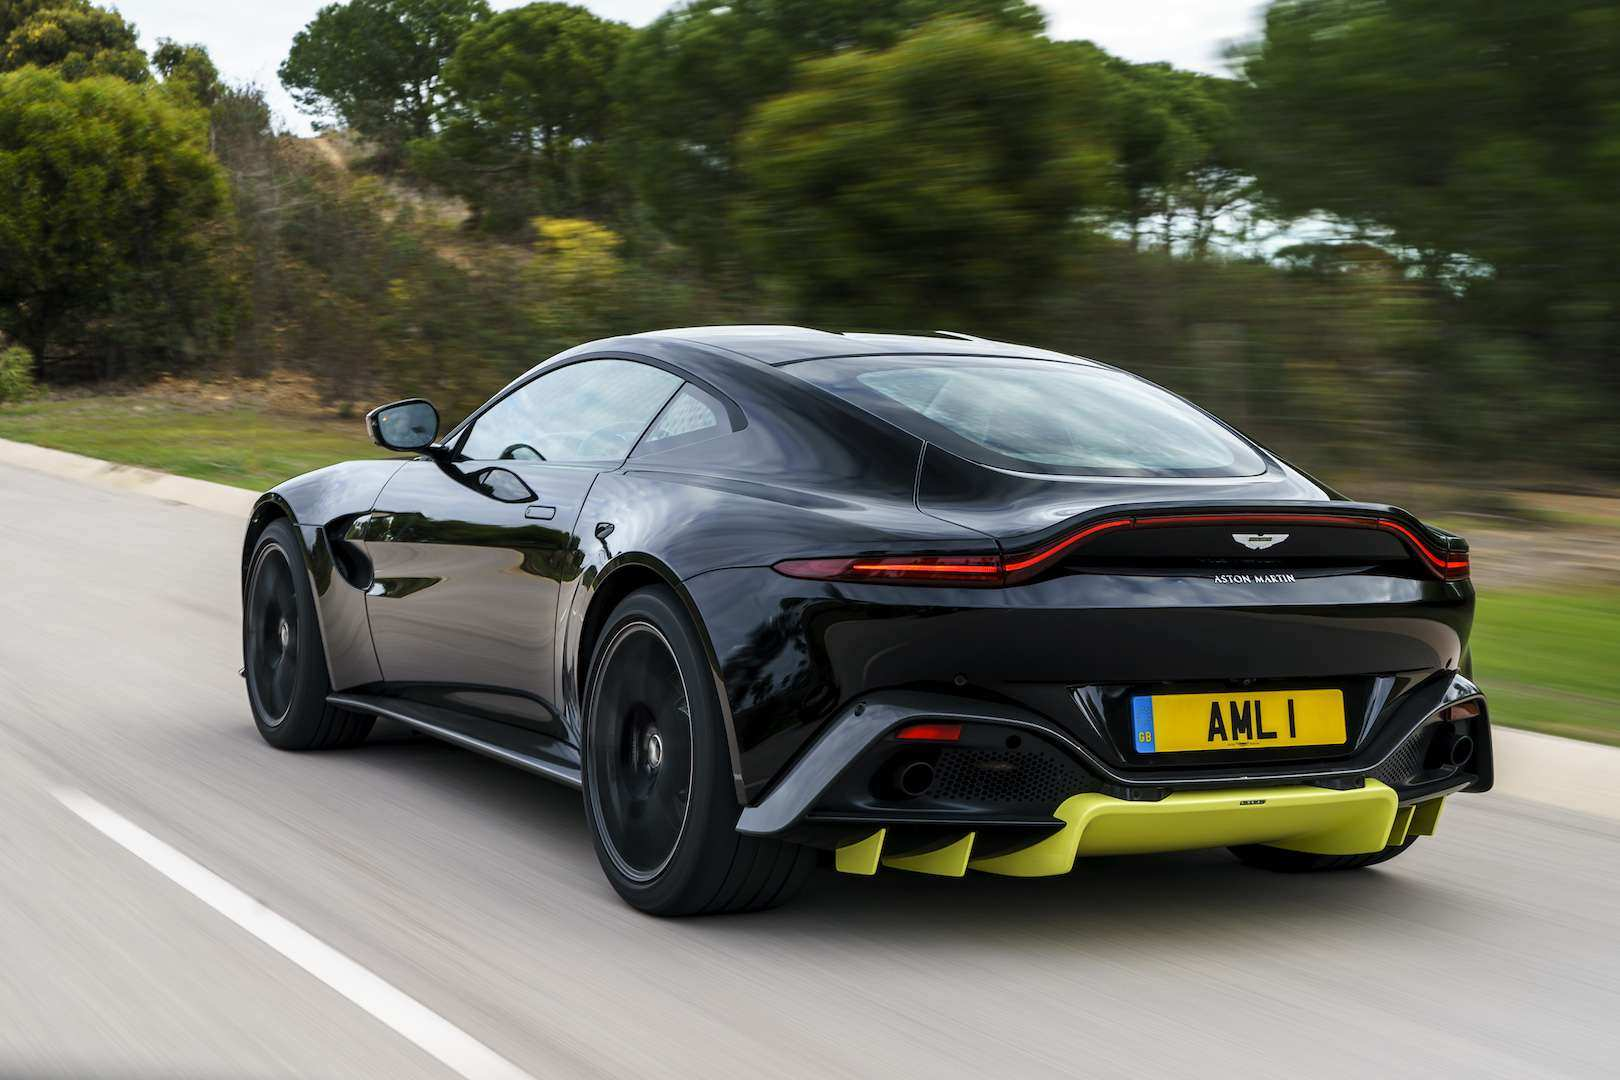 24 Great 2019 Aston Martin Vantage History with 2019 Aston Martin Vantage